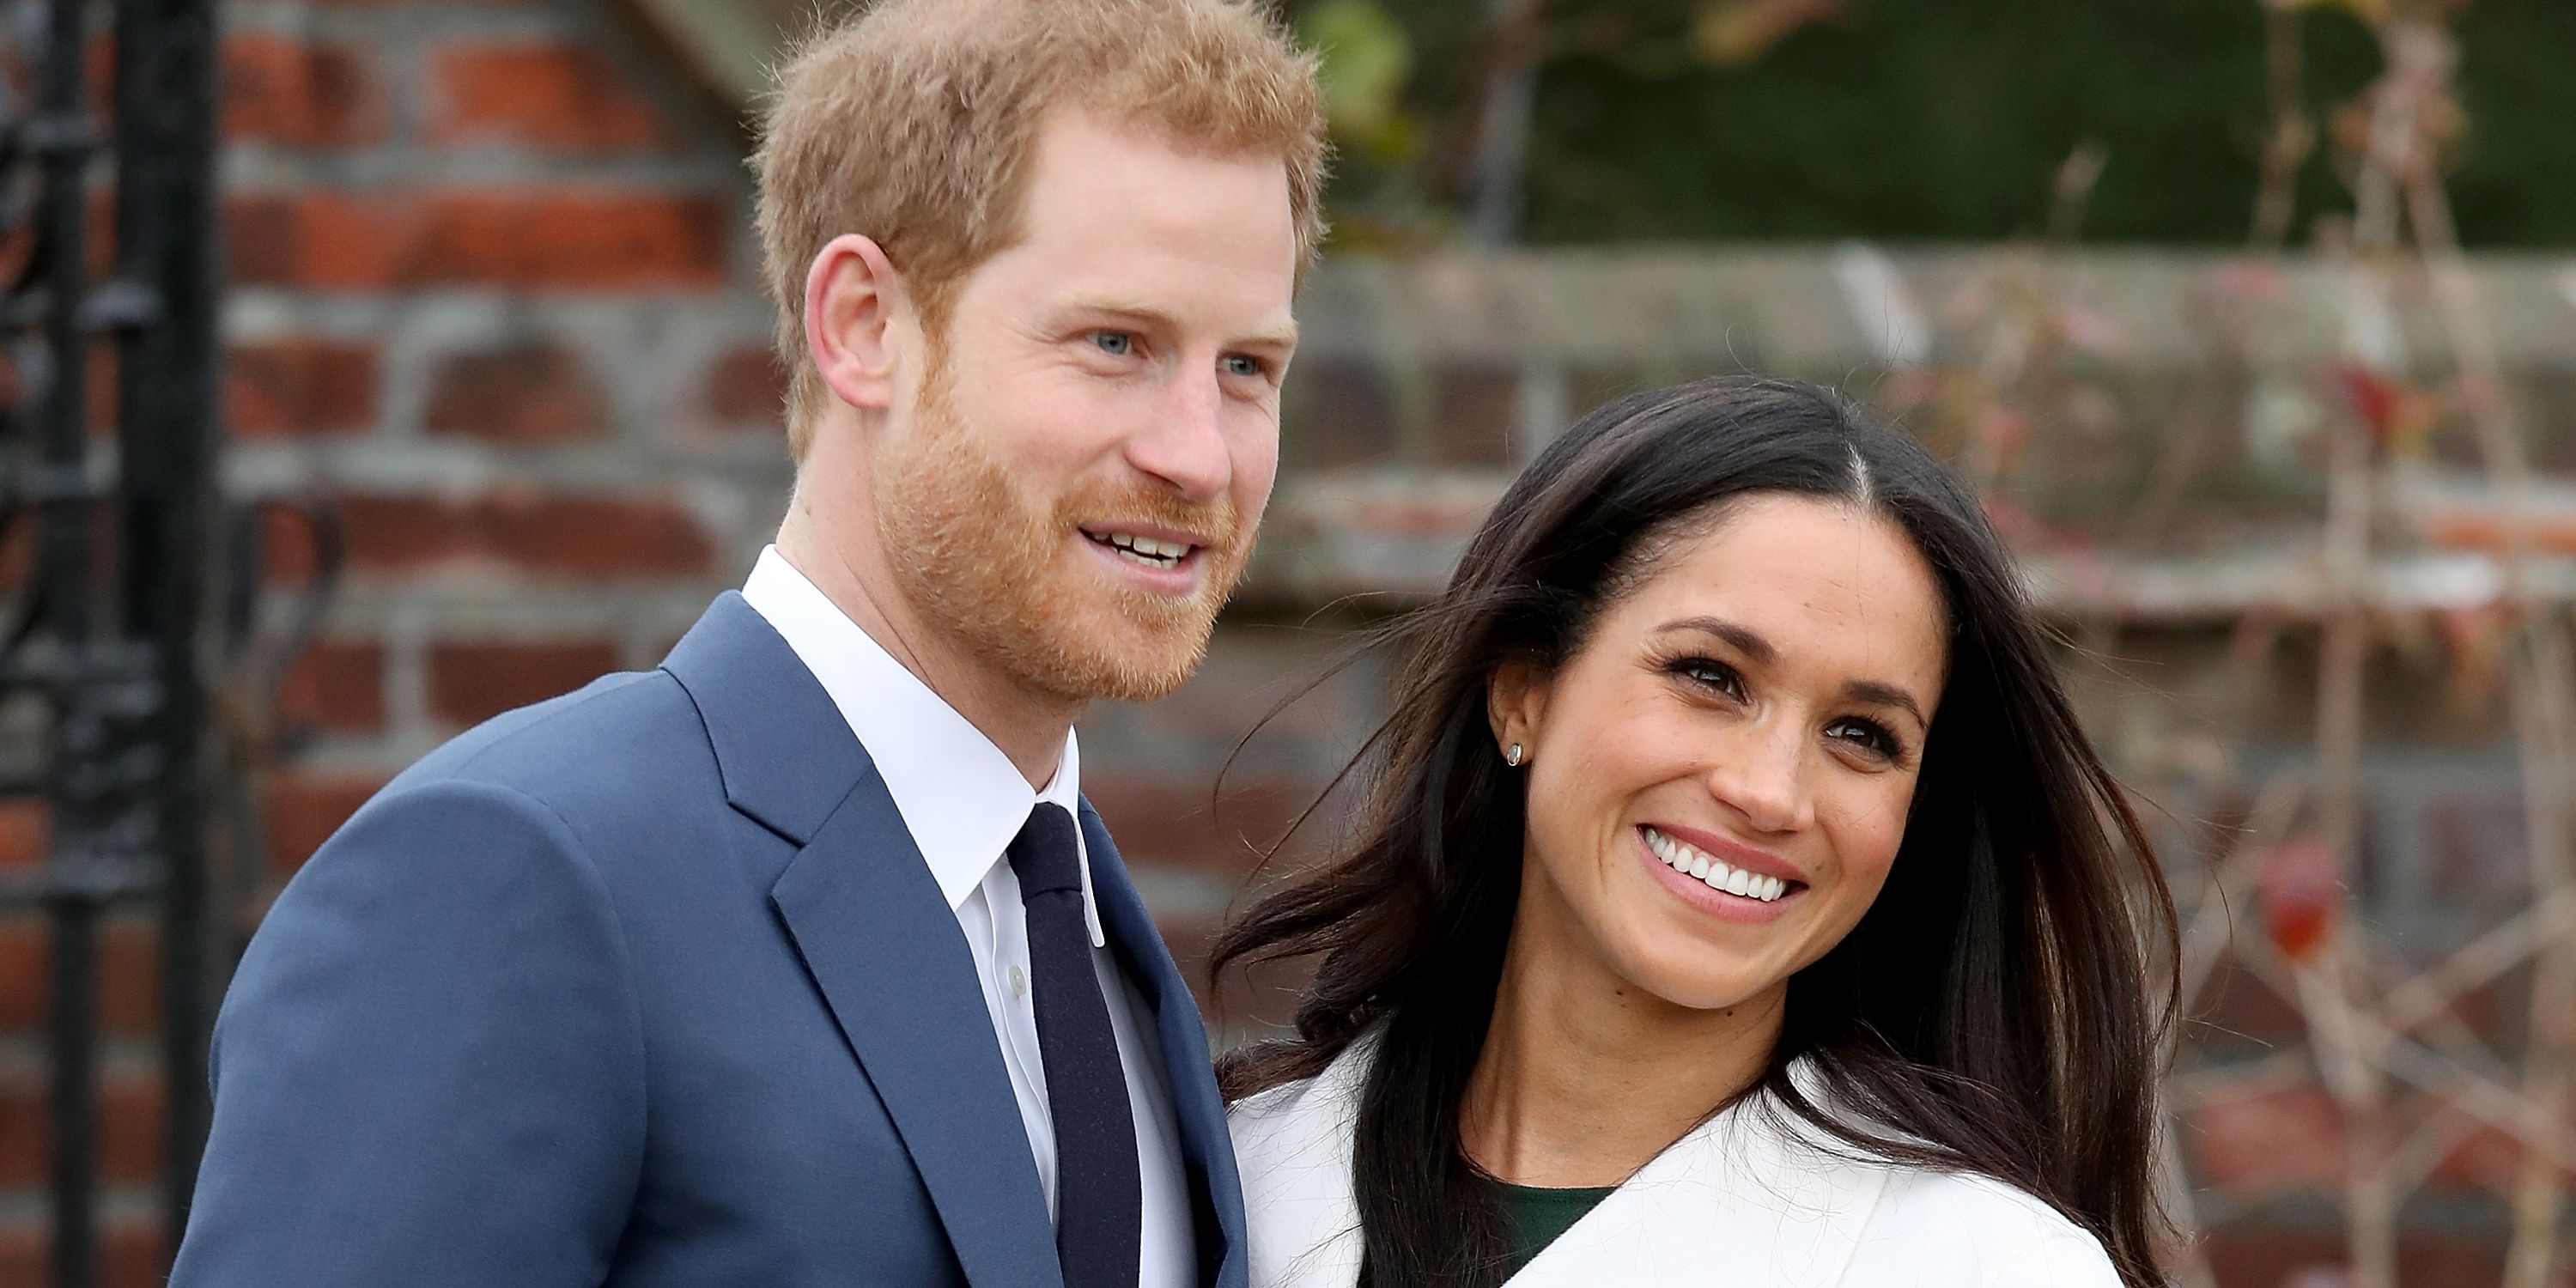 The Romantic Astrology Prediction for Meghan Markle And Prince